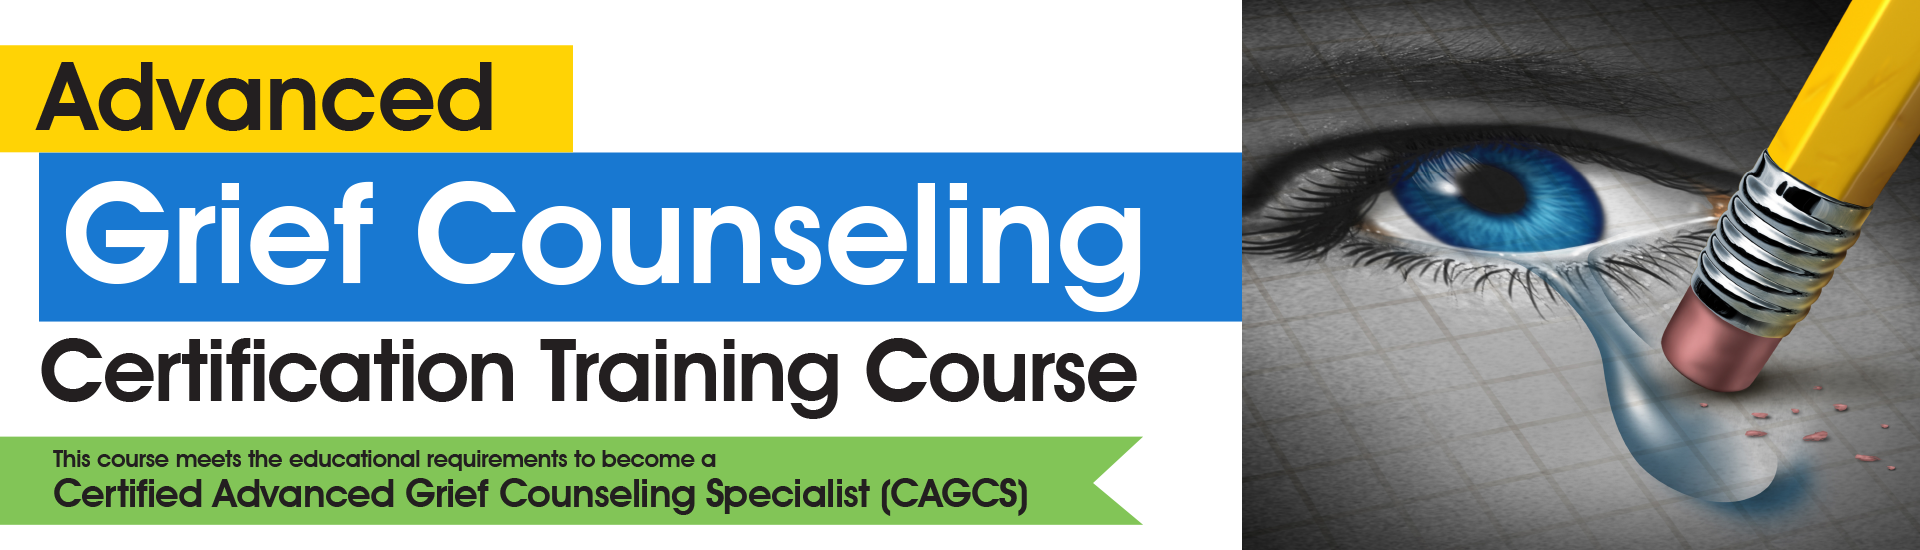 Advanced Grief Counseling Certification Training Course